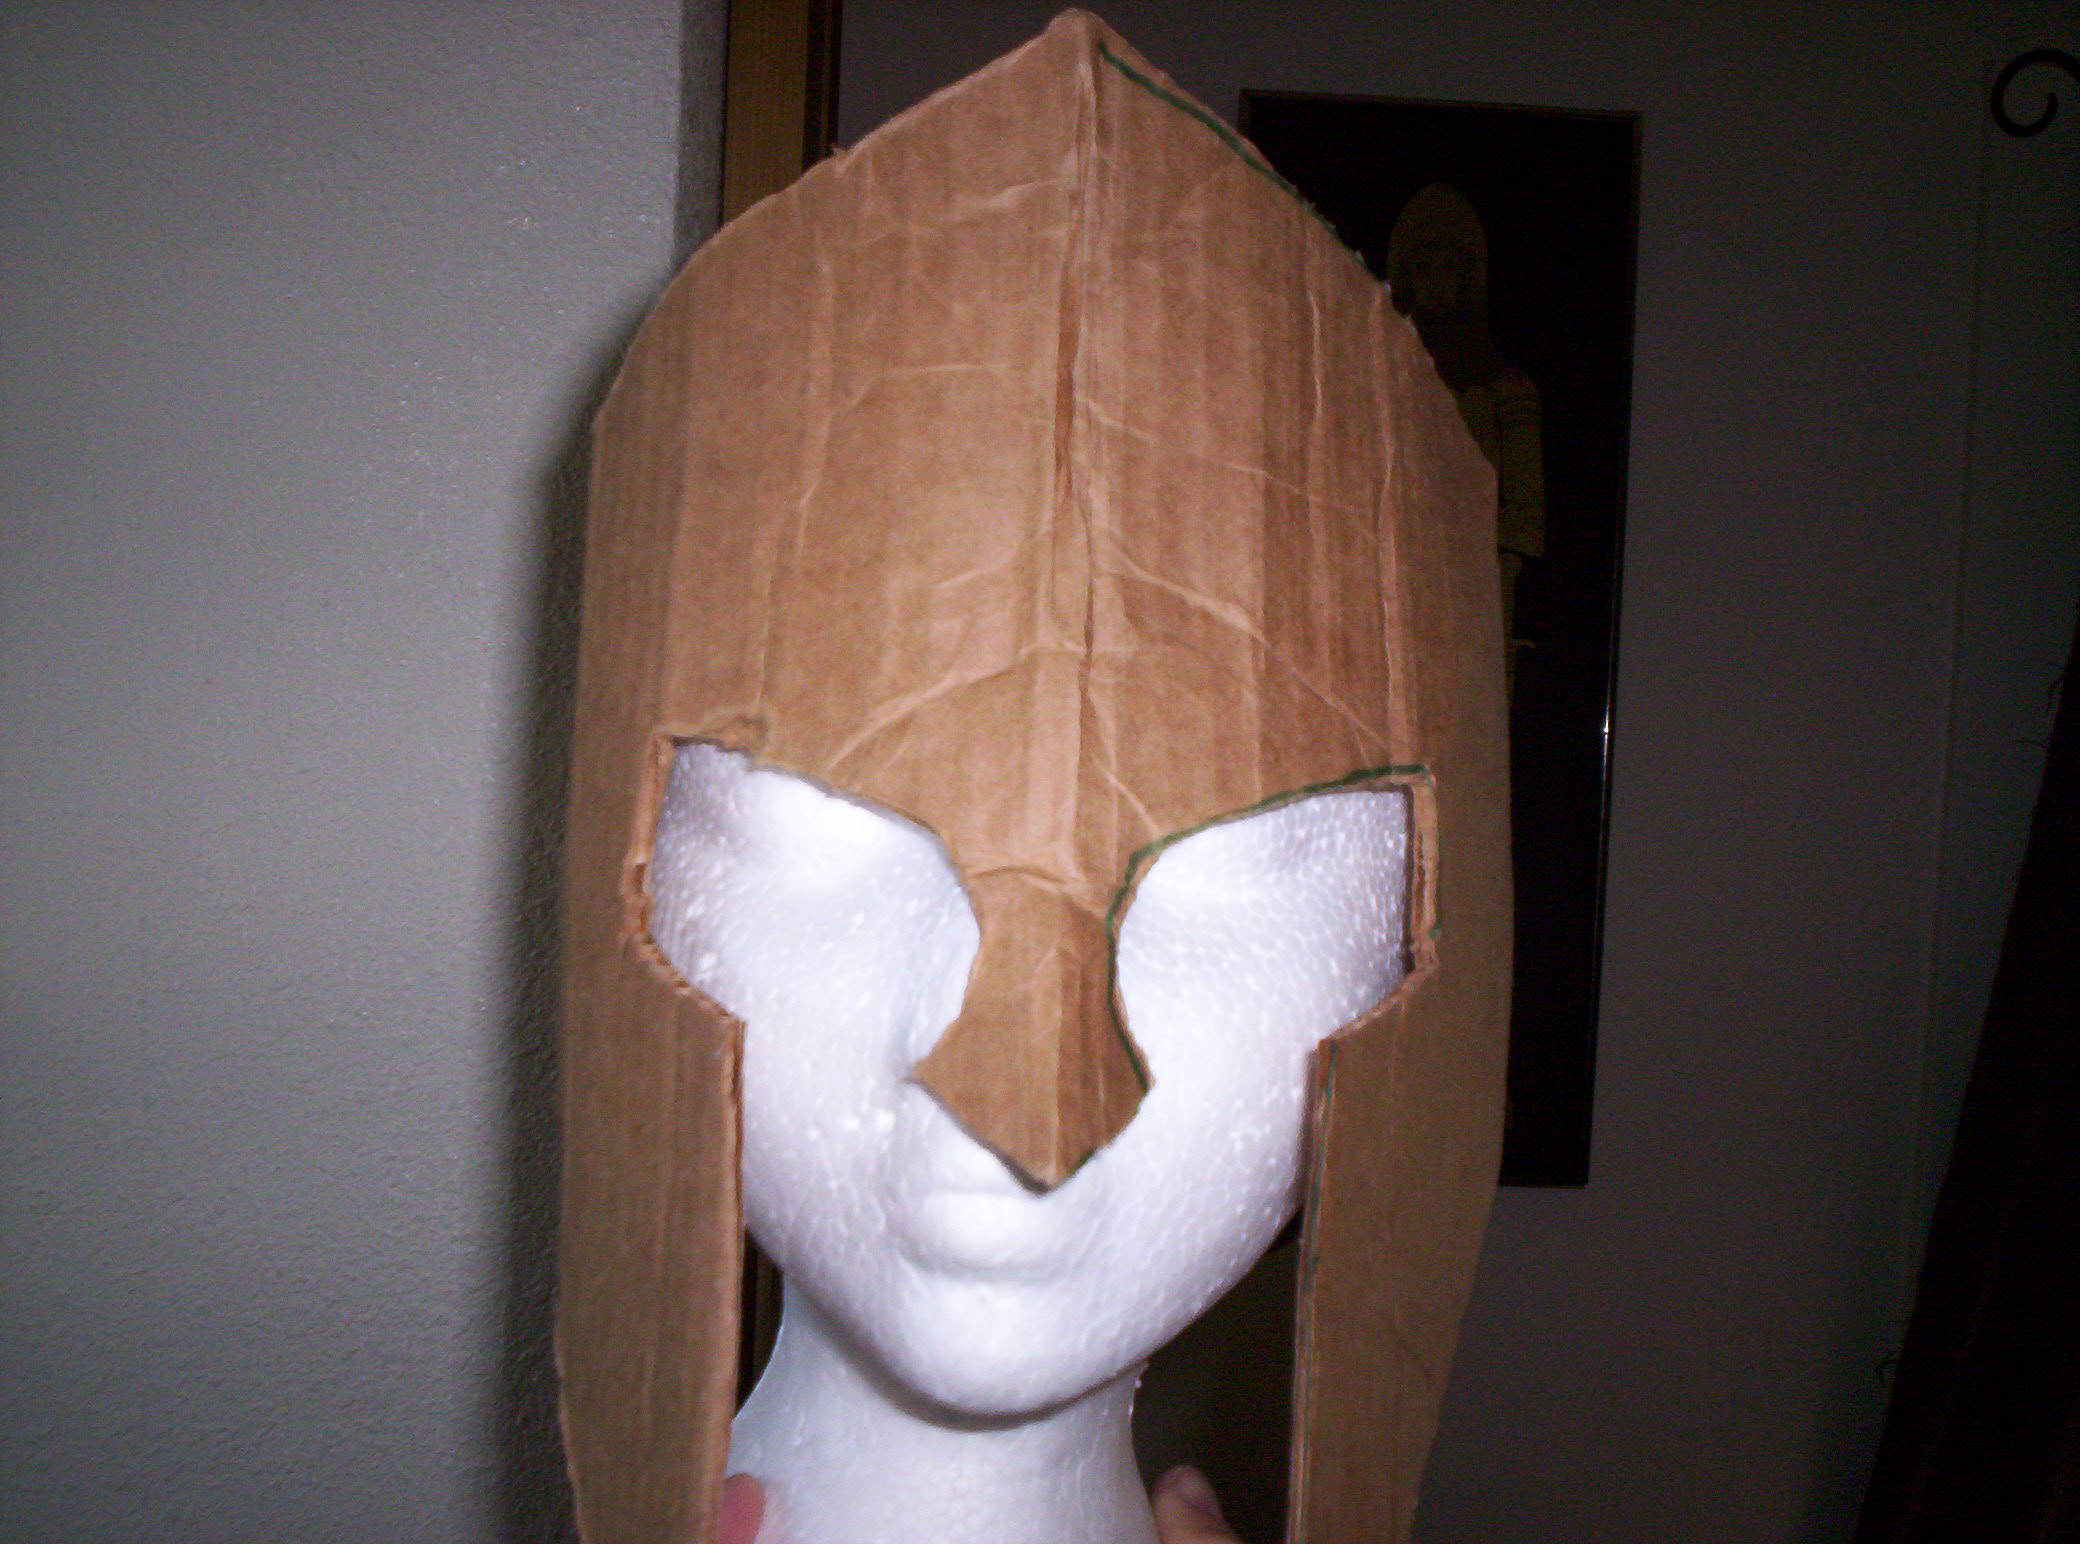 Picture of Cutting and Constructing the Cardboard Helmet